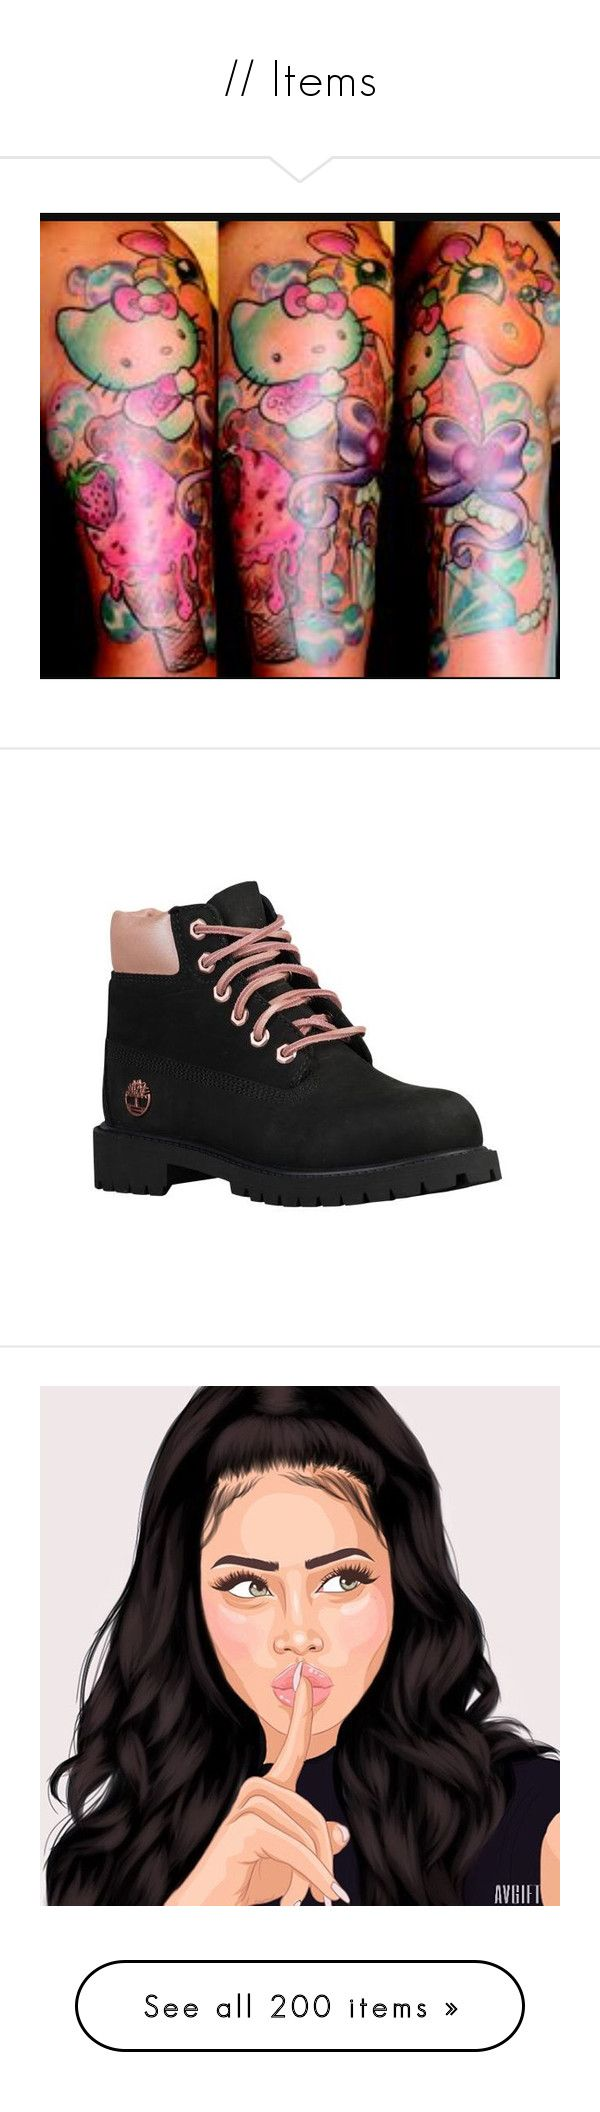 """""""// Items"""" by melaninmonroee ❤ liked on Polyvore featuring shoes, accessories, tech accessories, beats by dr dre headphones, beats by dr. dre, sneakers, laced up shoes, creeper sneakers, puma footwear and lace up sneakers"""